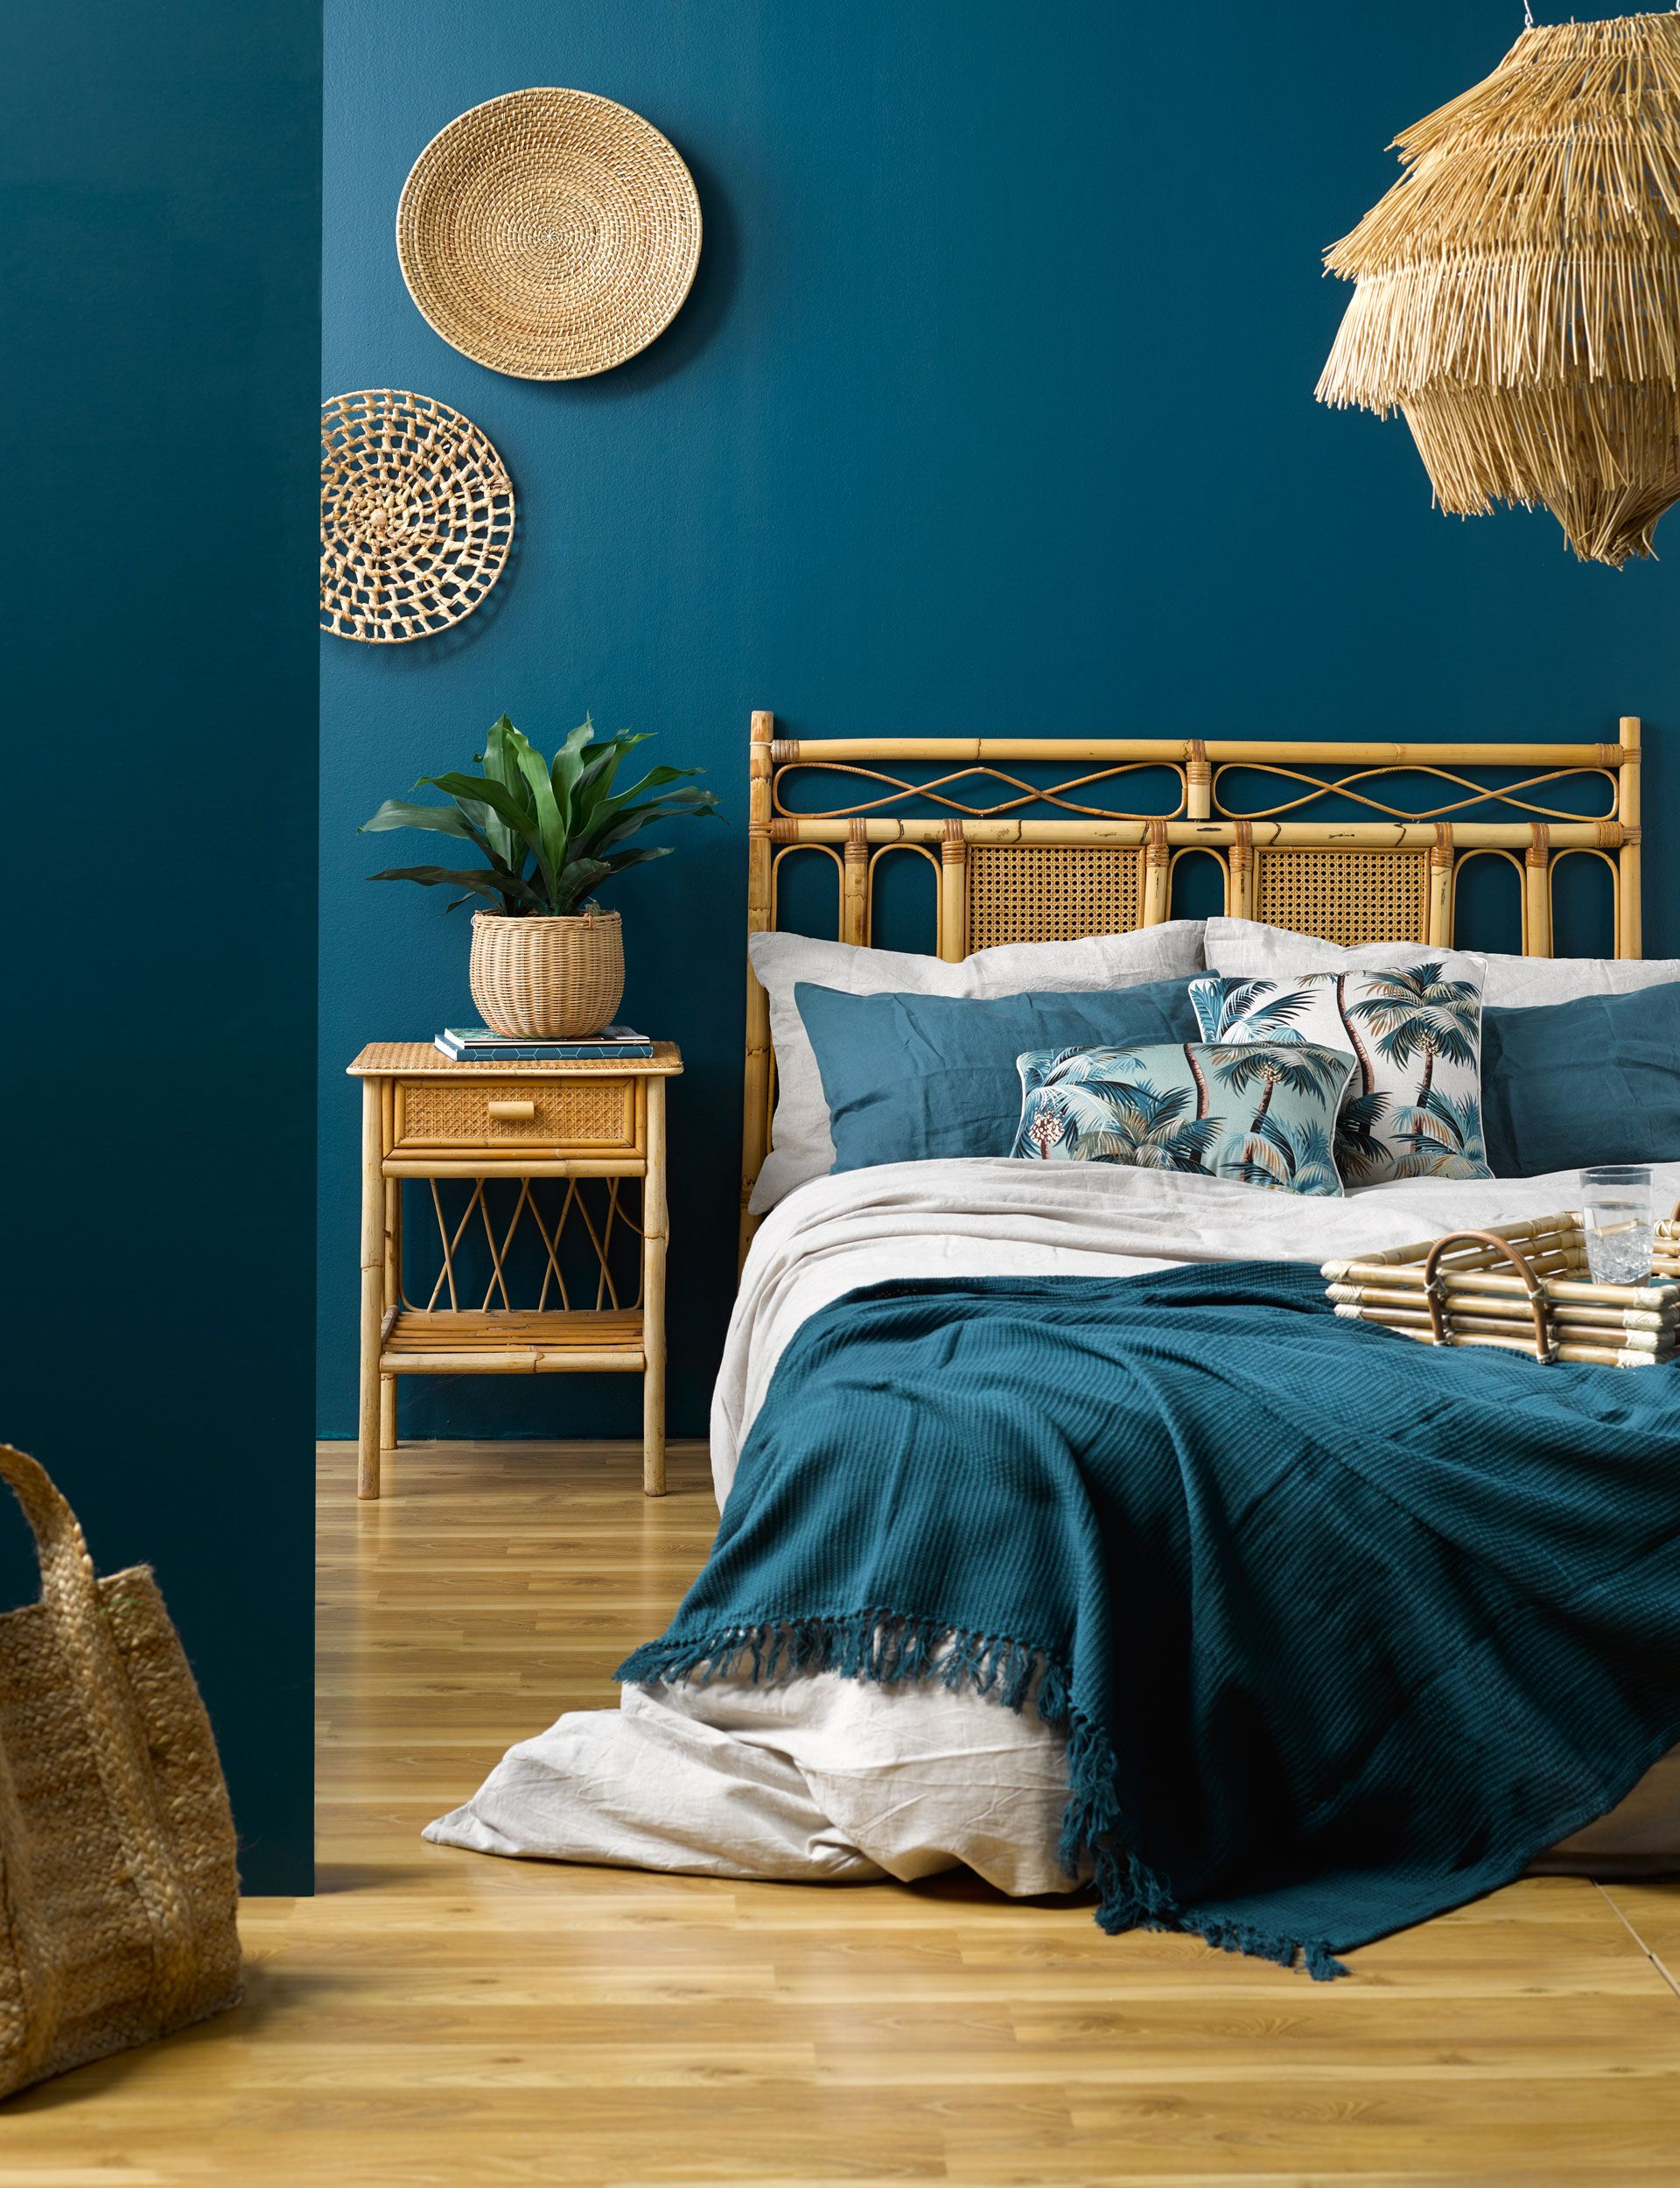 3 Ways You Can Add Laid Back Tropical Style To Your Bedroom Decor Bedrooms Home